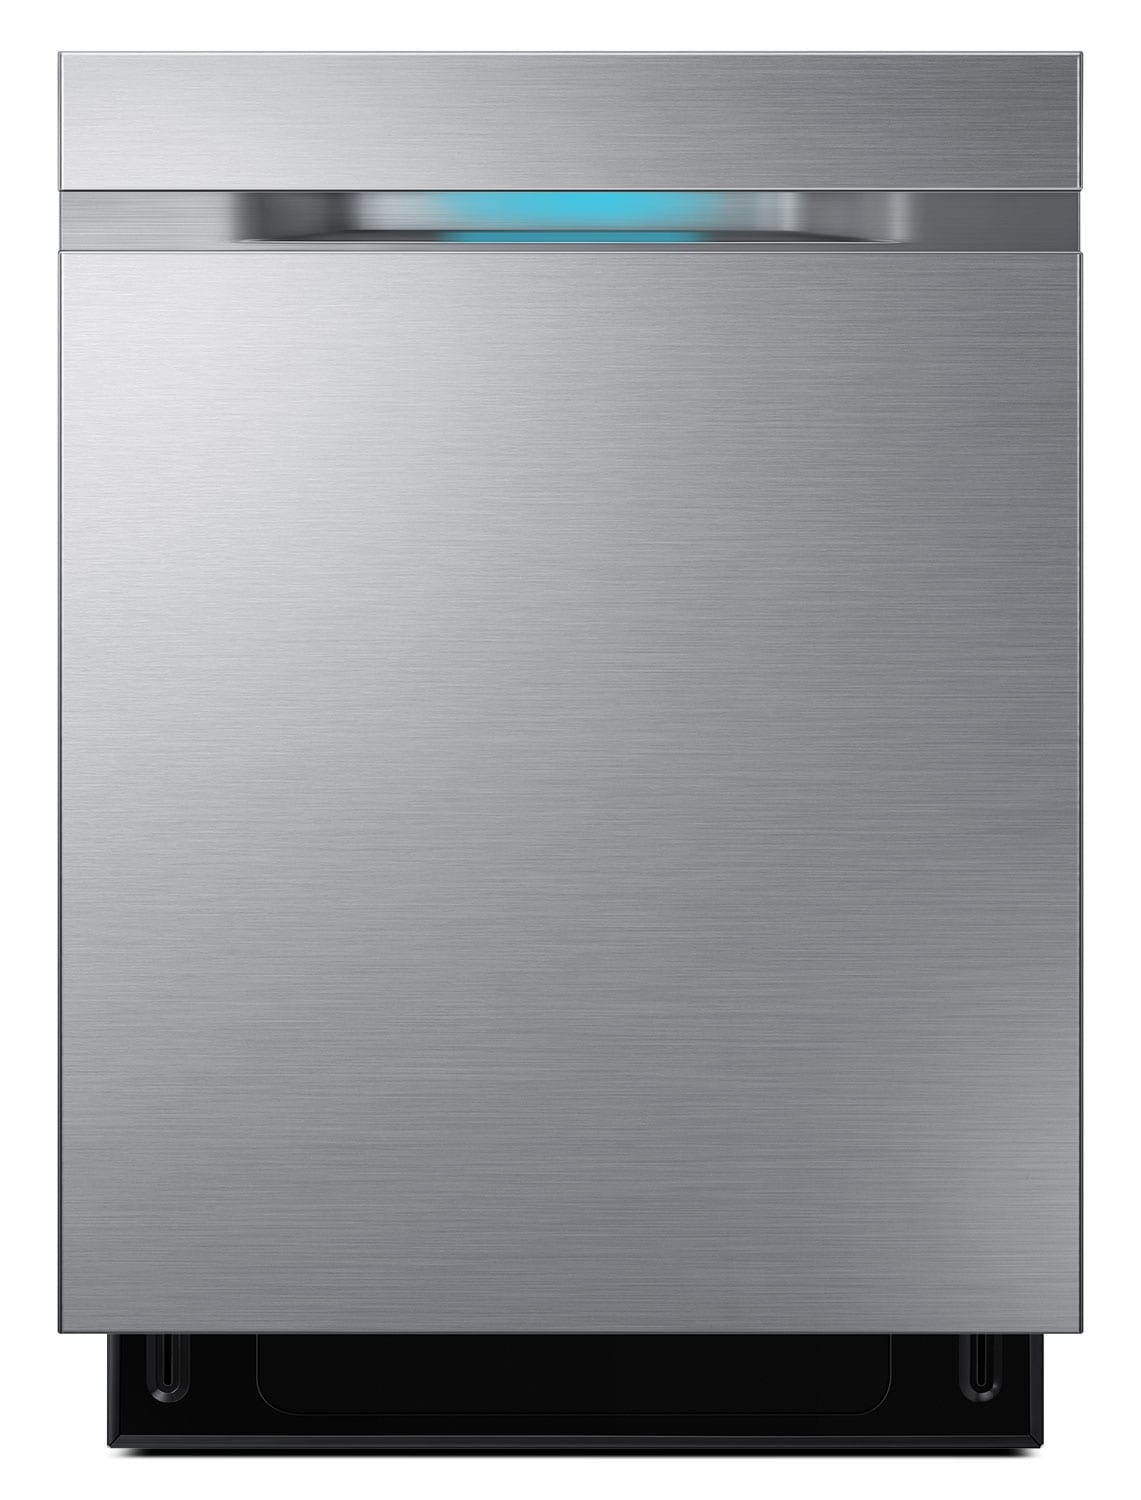 Samsung WaterWall™ Built-In Dishwasher - Stainless Steel